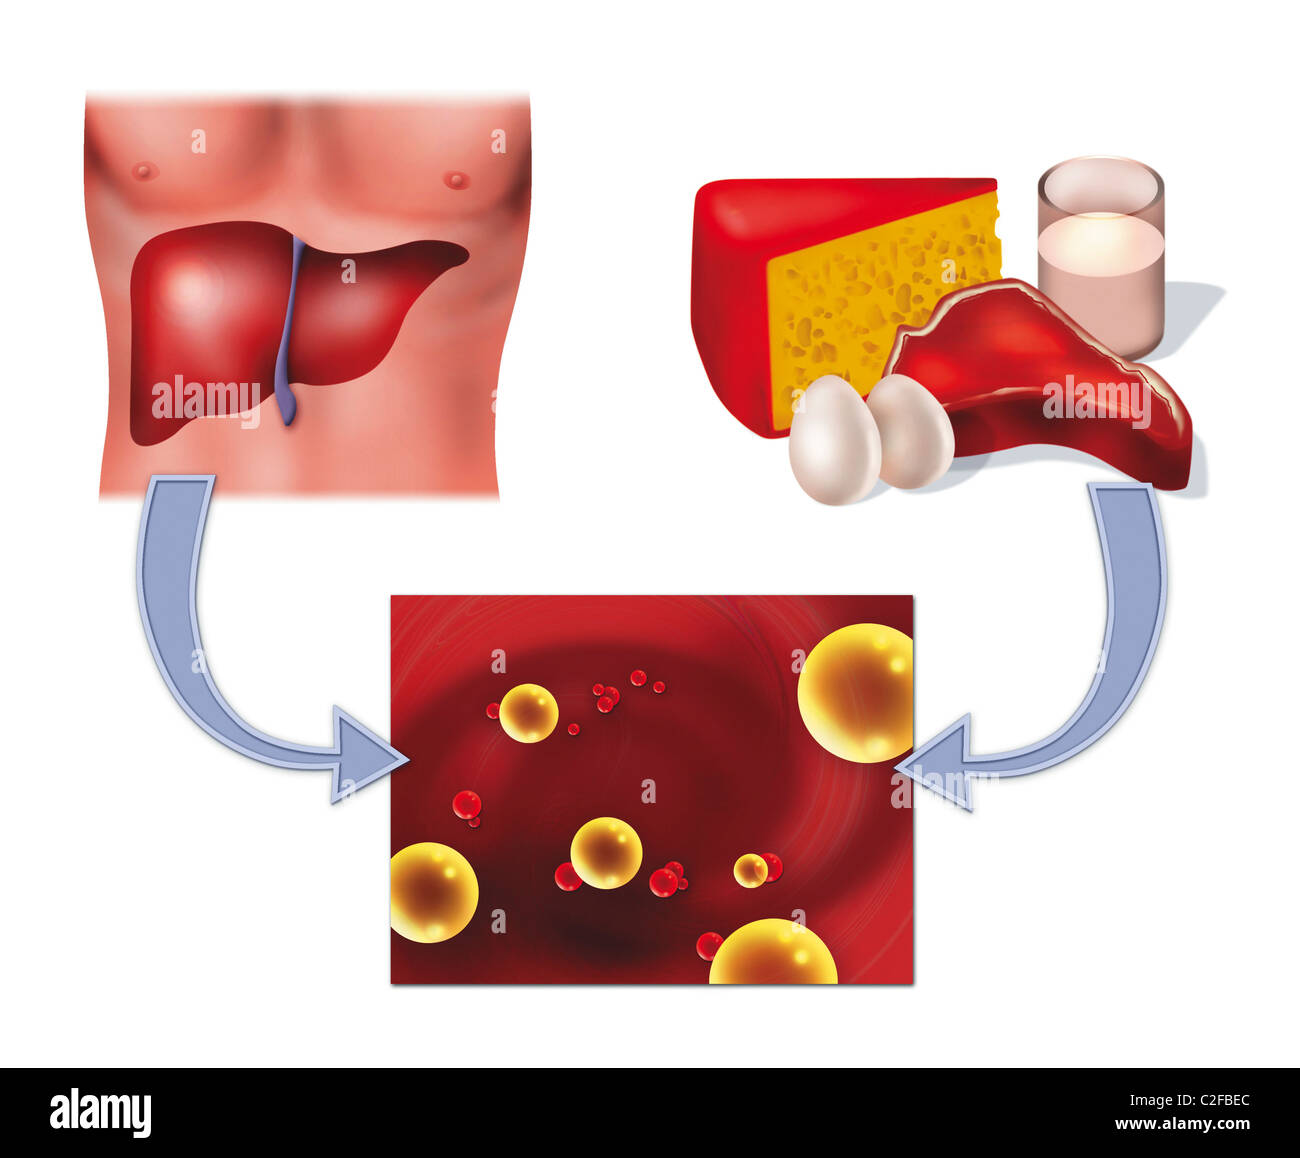 hight resolution of diagram illustration of cholesterol in food and human liver health